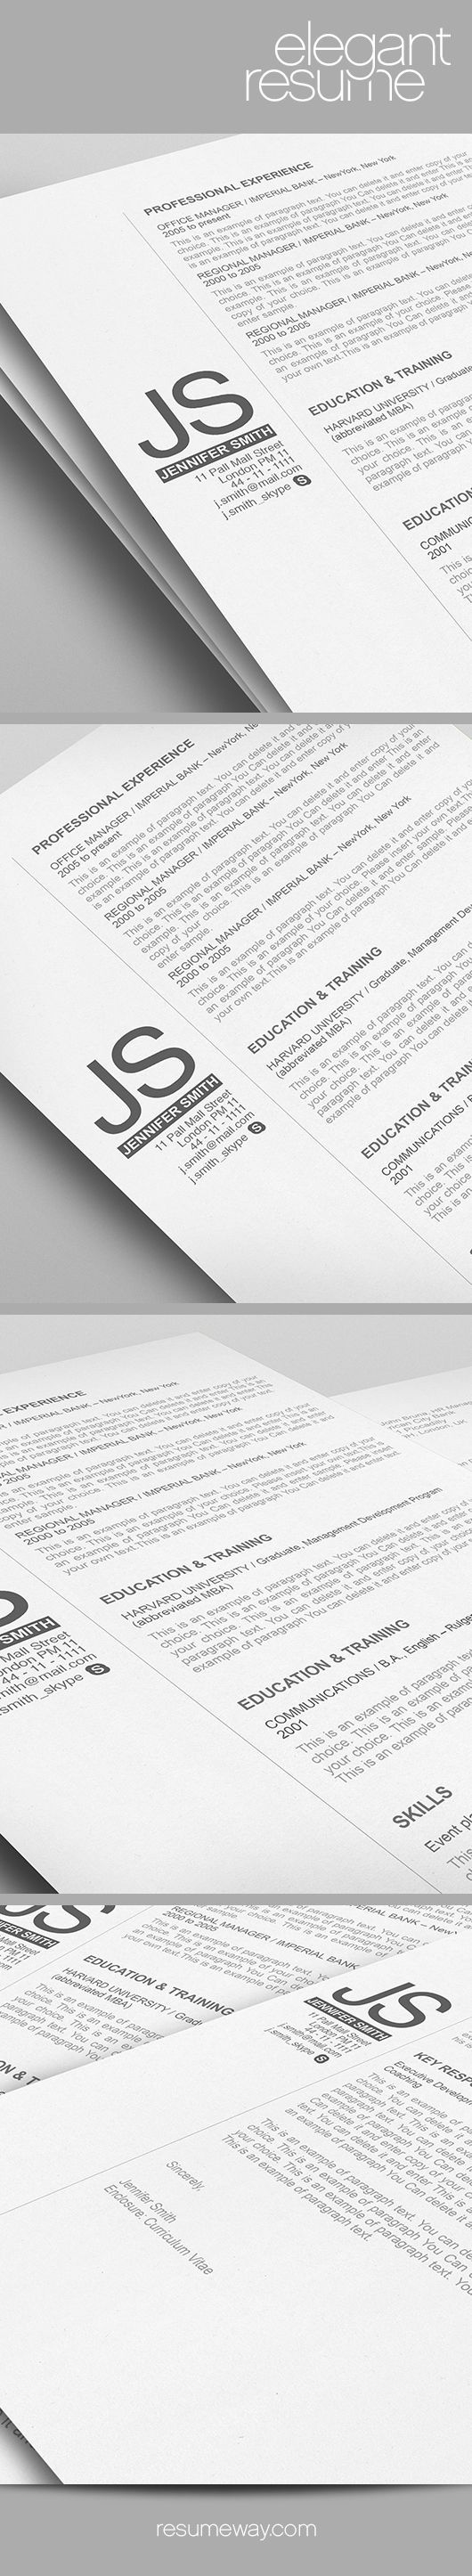 Elegant Resume Template - 110540 - Premium line of Resume  Cover Letter Templates. Easy edit with MS Word, Apple Pages - Resume, Resumes - $7.95 #infographics